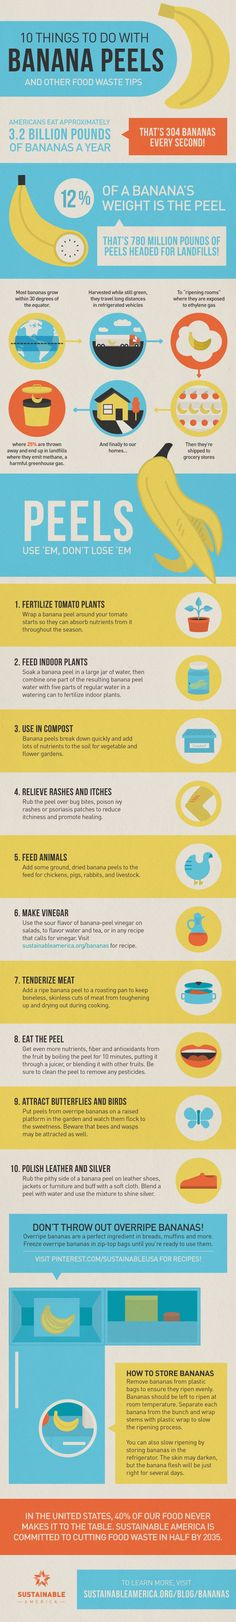 10 Things to Do With Banana Peels   #infographic #Banana #Waste #DIY #Environment